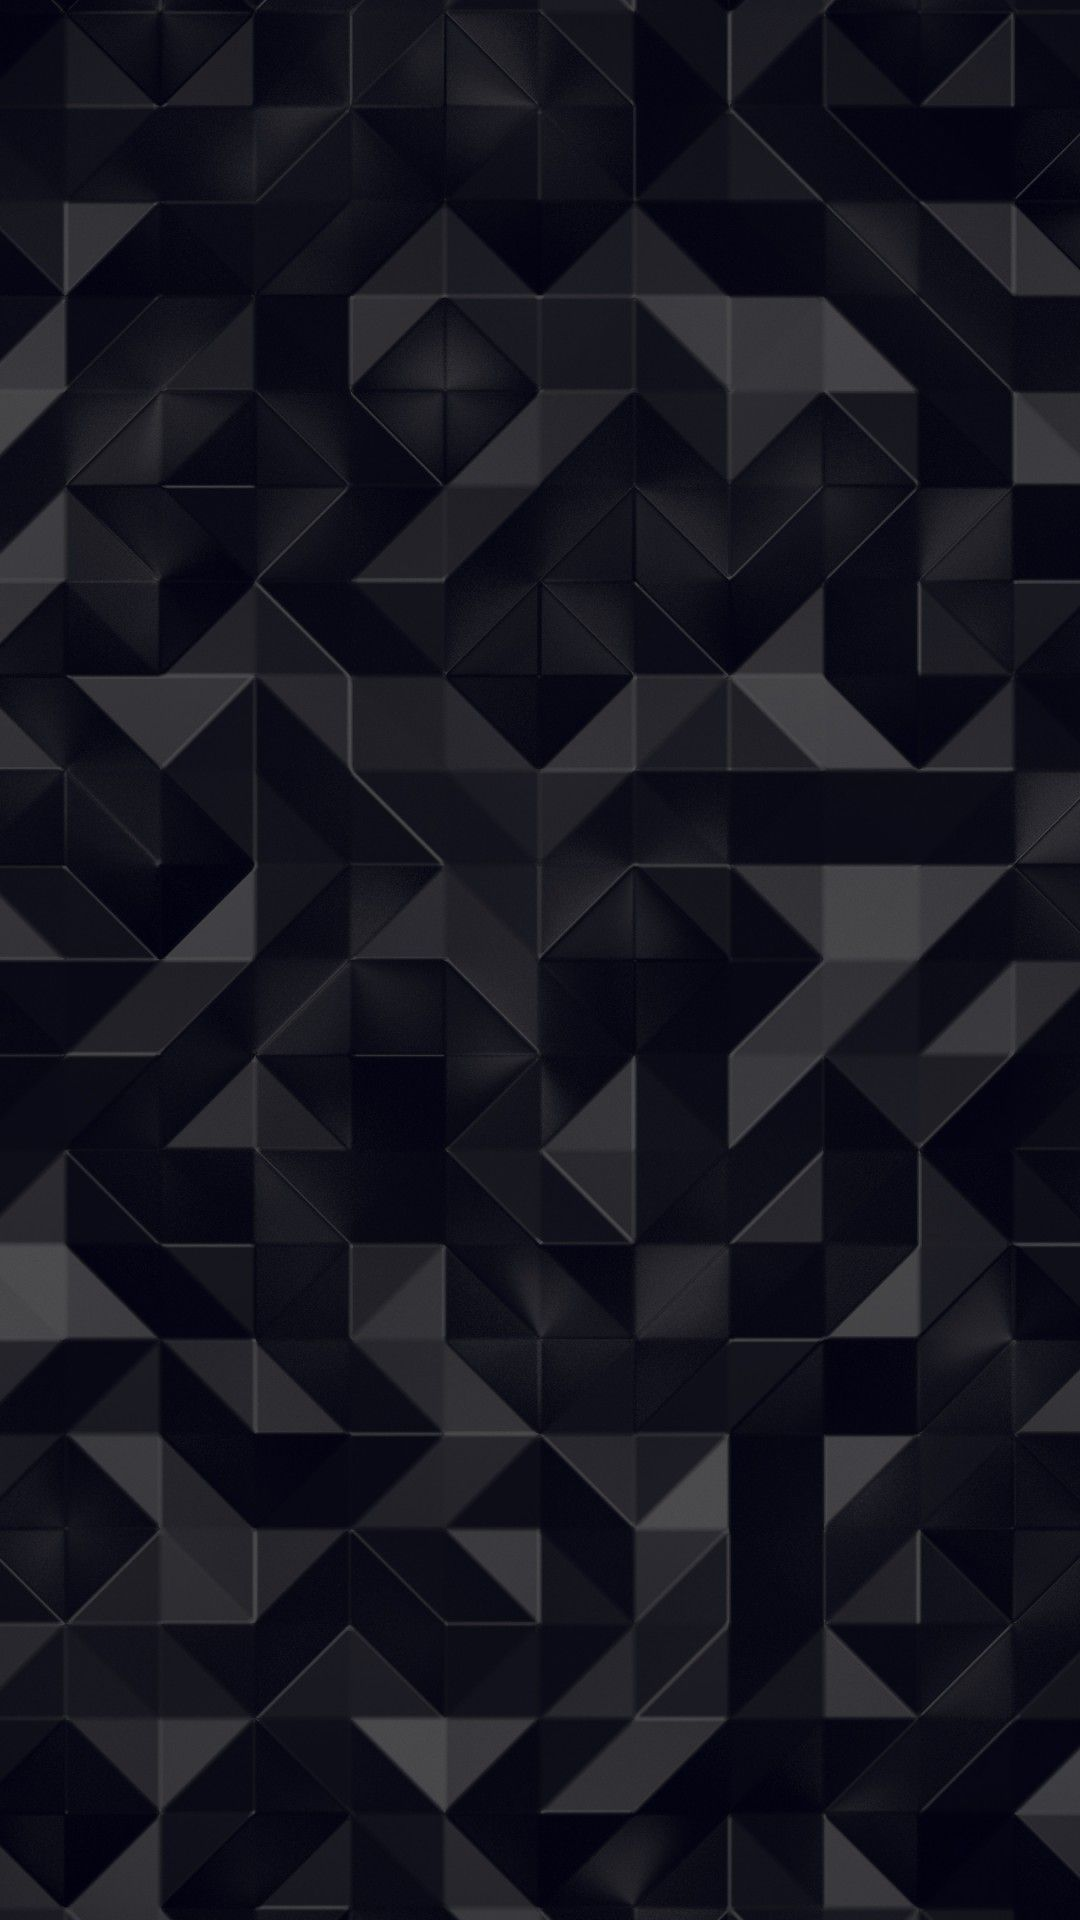 Geometric White Pattern Picture In 2020 Geometric Wallpaper Iphone Graphic Wallpaper Blue And White Wallpaper